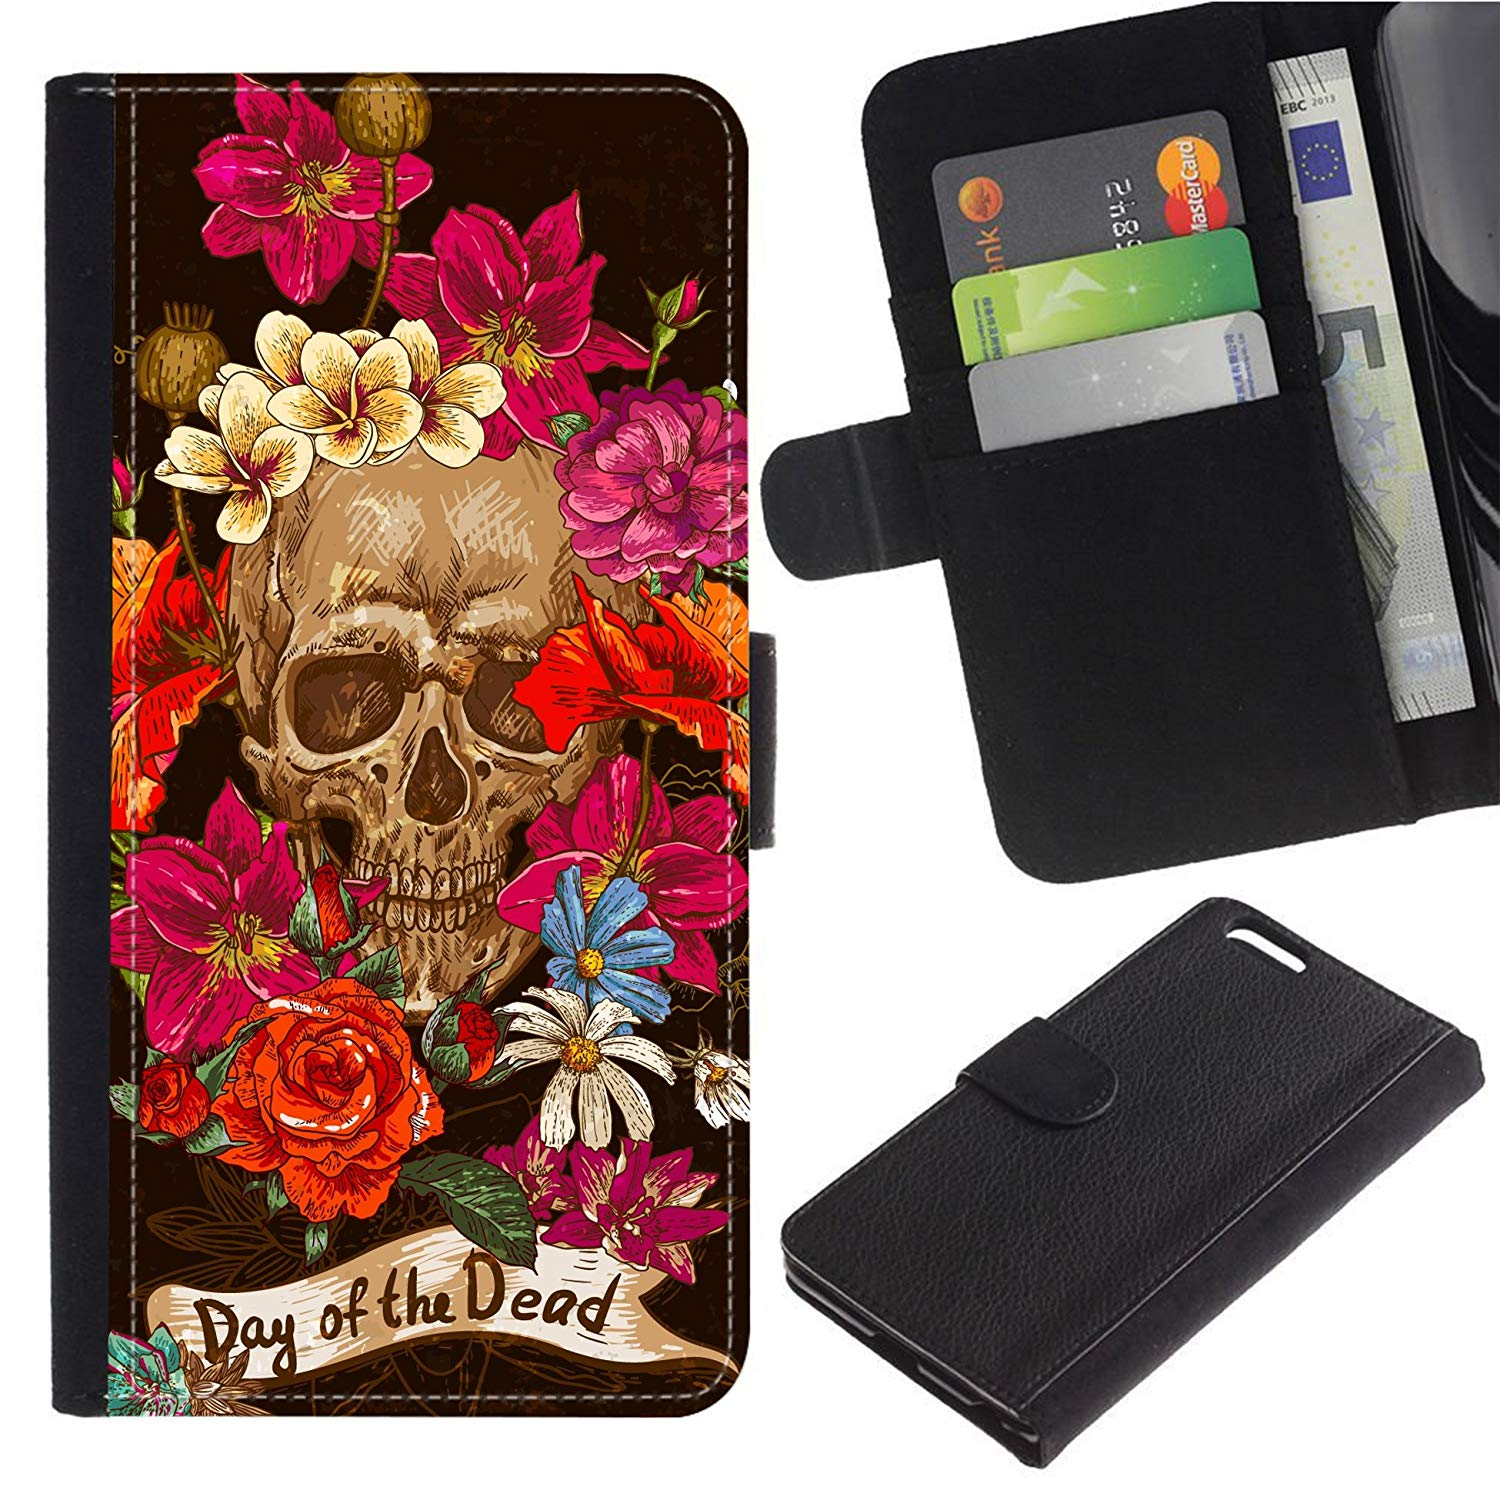 [Vintage Style Floral Skull] For Moto E5 Play/Moto E5 Cruise, Flip Leather Wallet Holsters Pouch Skin Case